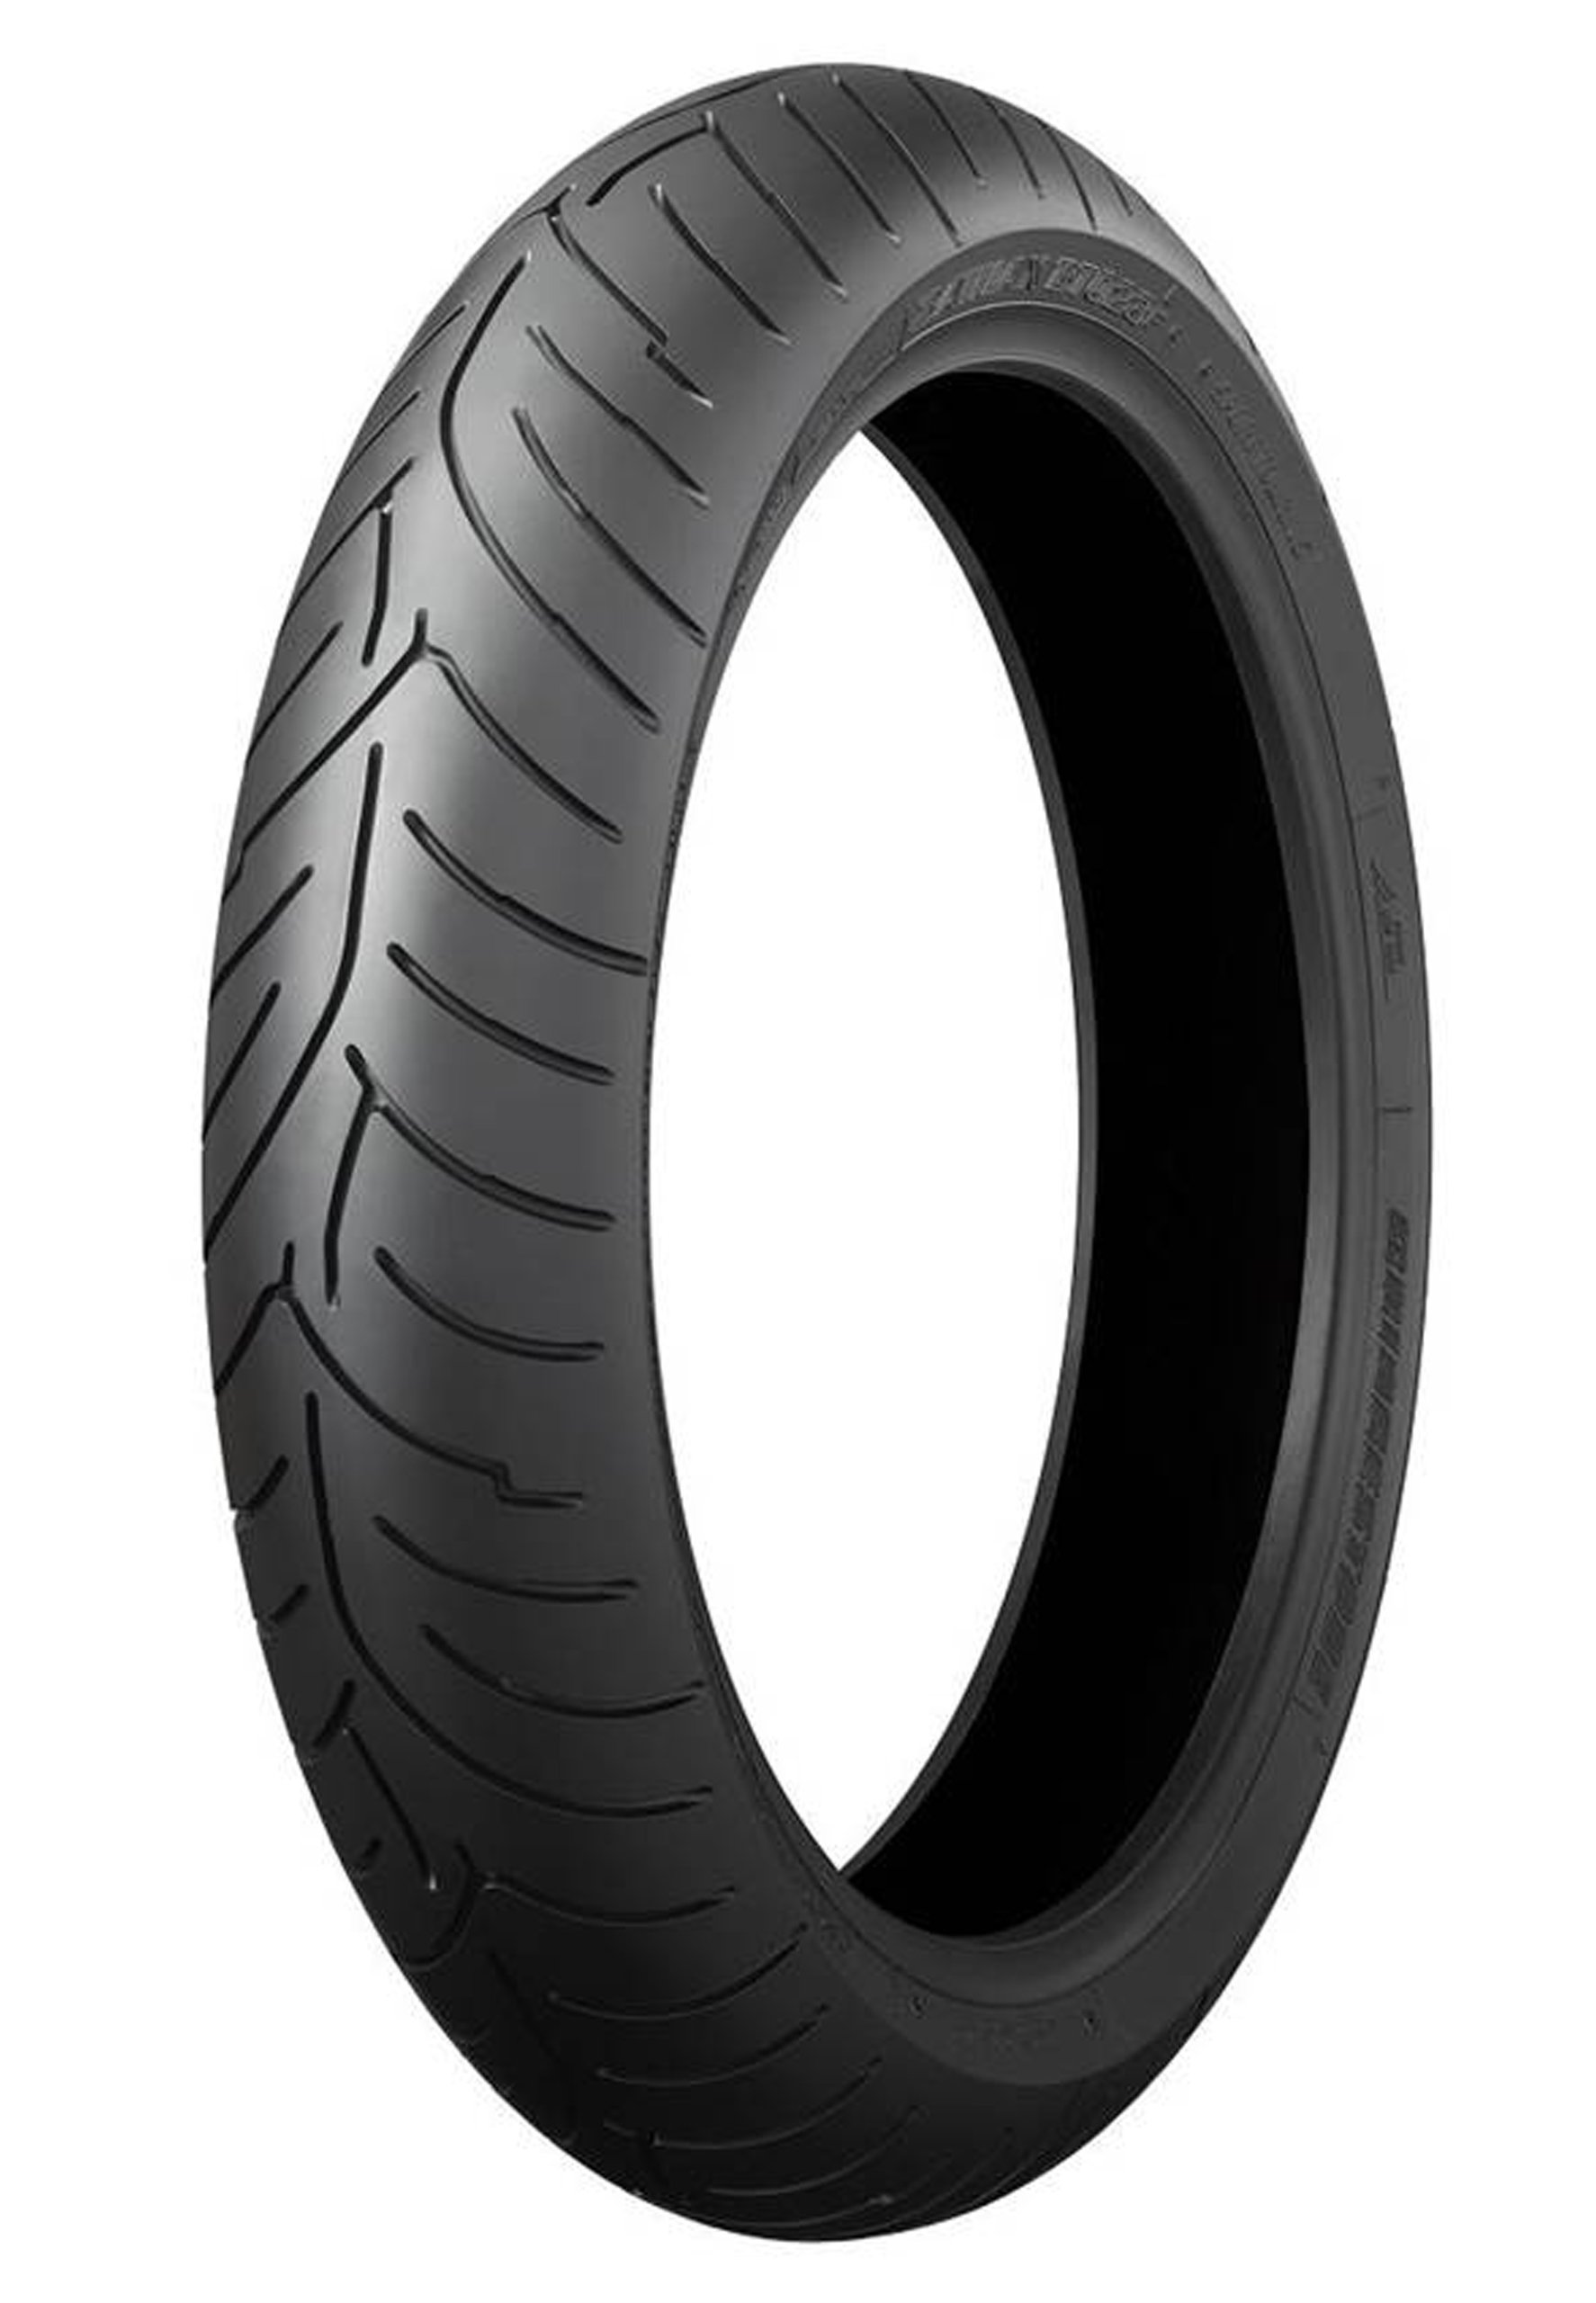 Bridgestone BATTLAX BT-023 Sport/Touring Front Motorcycle Tire 120/70-17 by Bridgestone (Image #1)